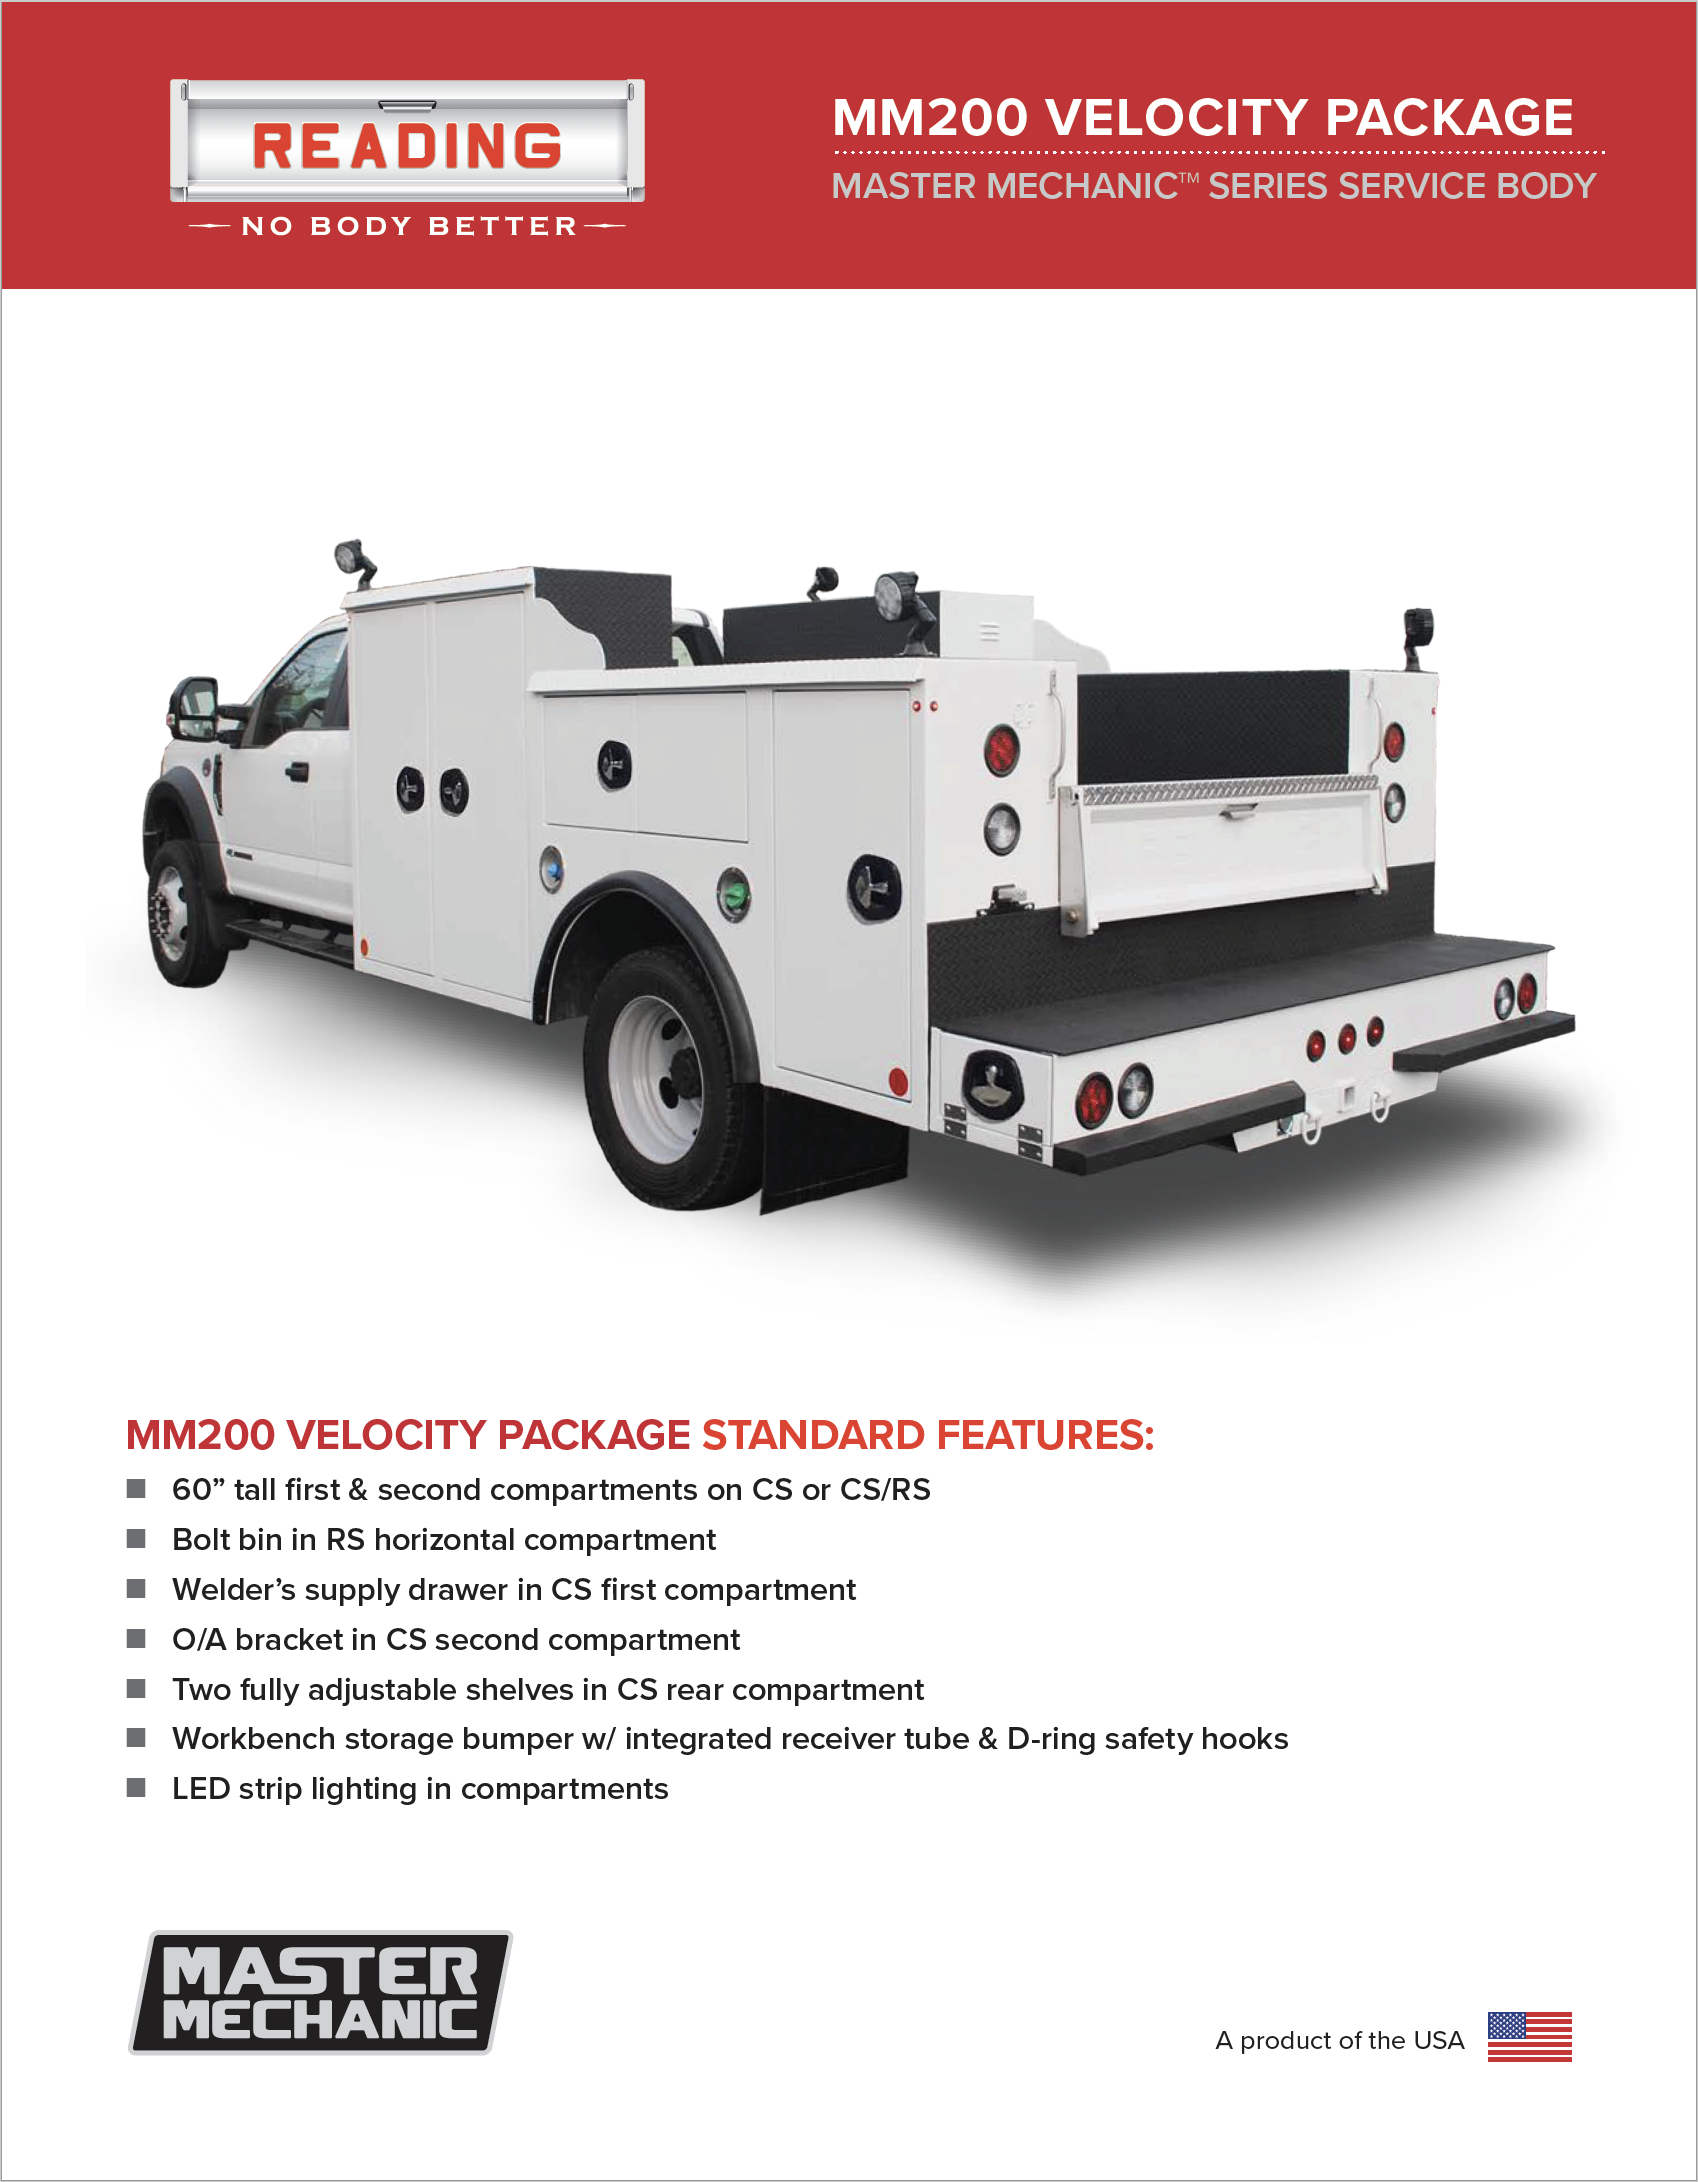 MM200 Velocity Package Product Literature